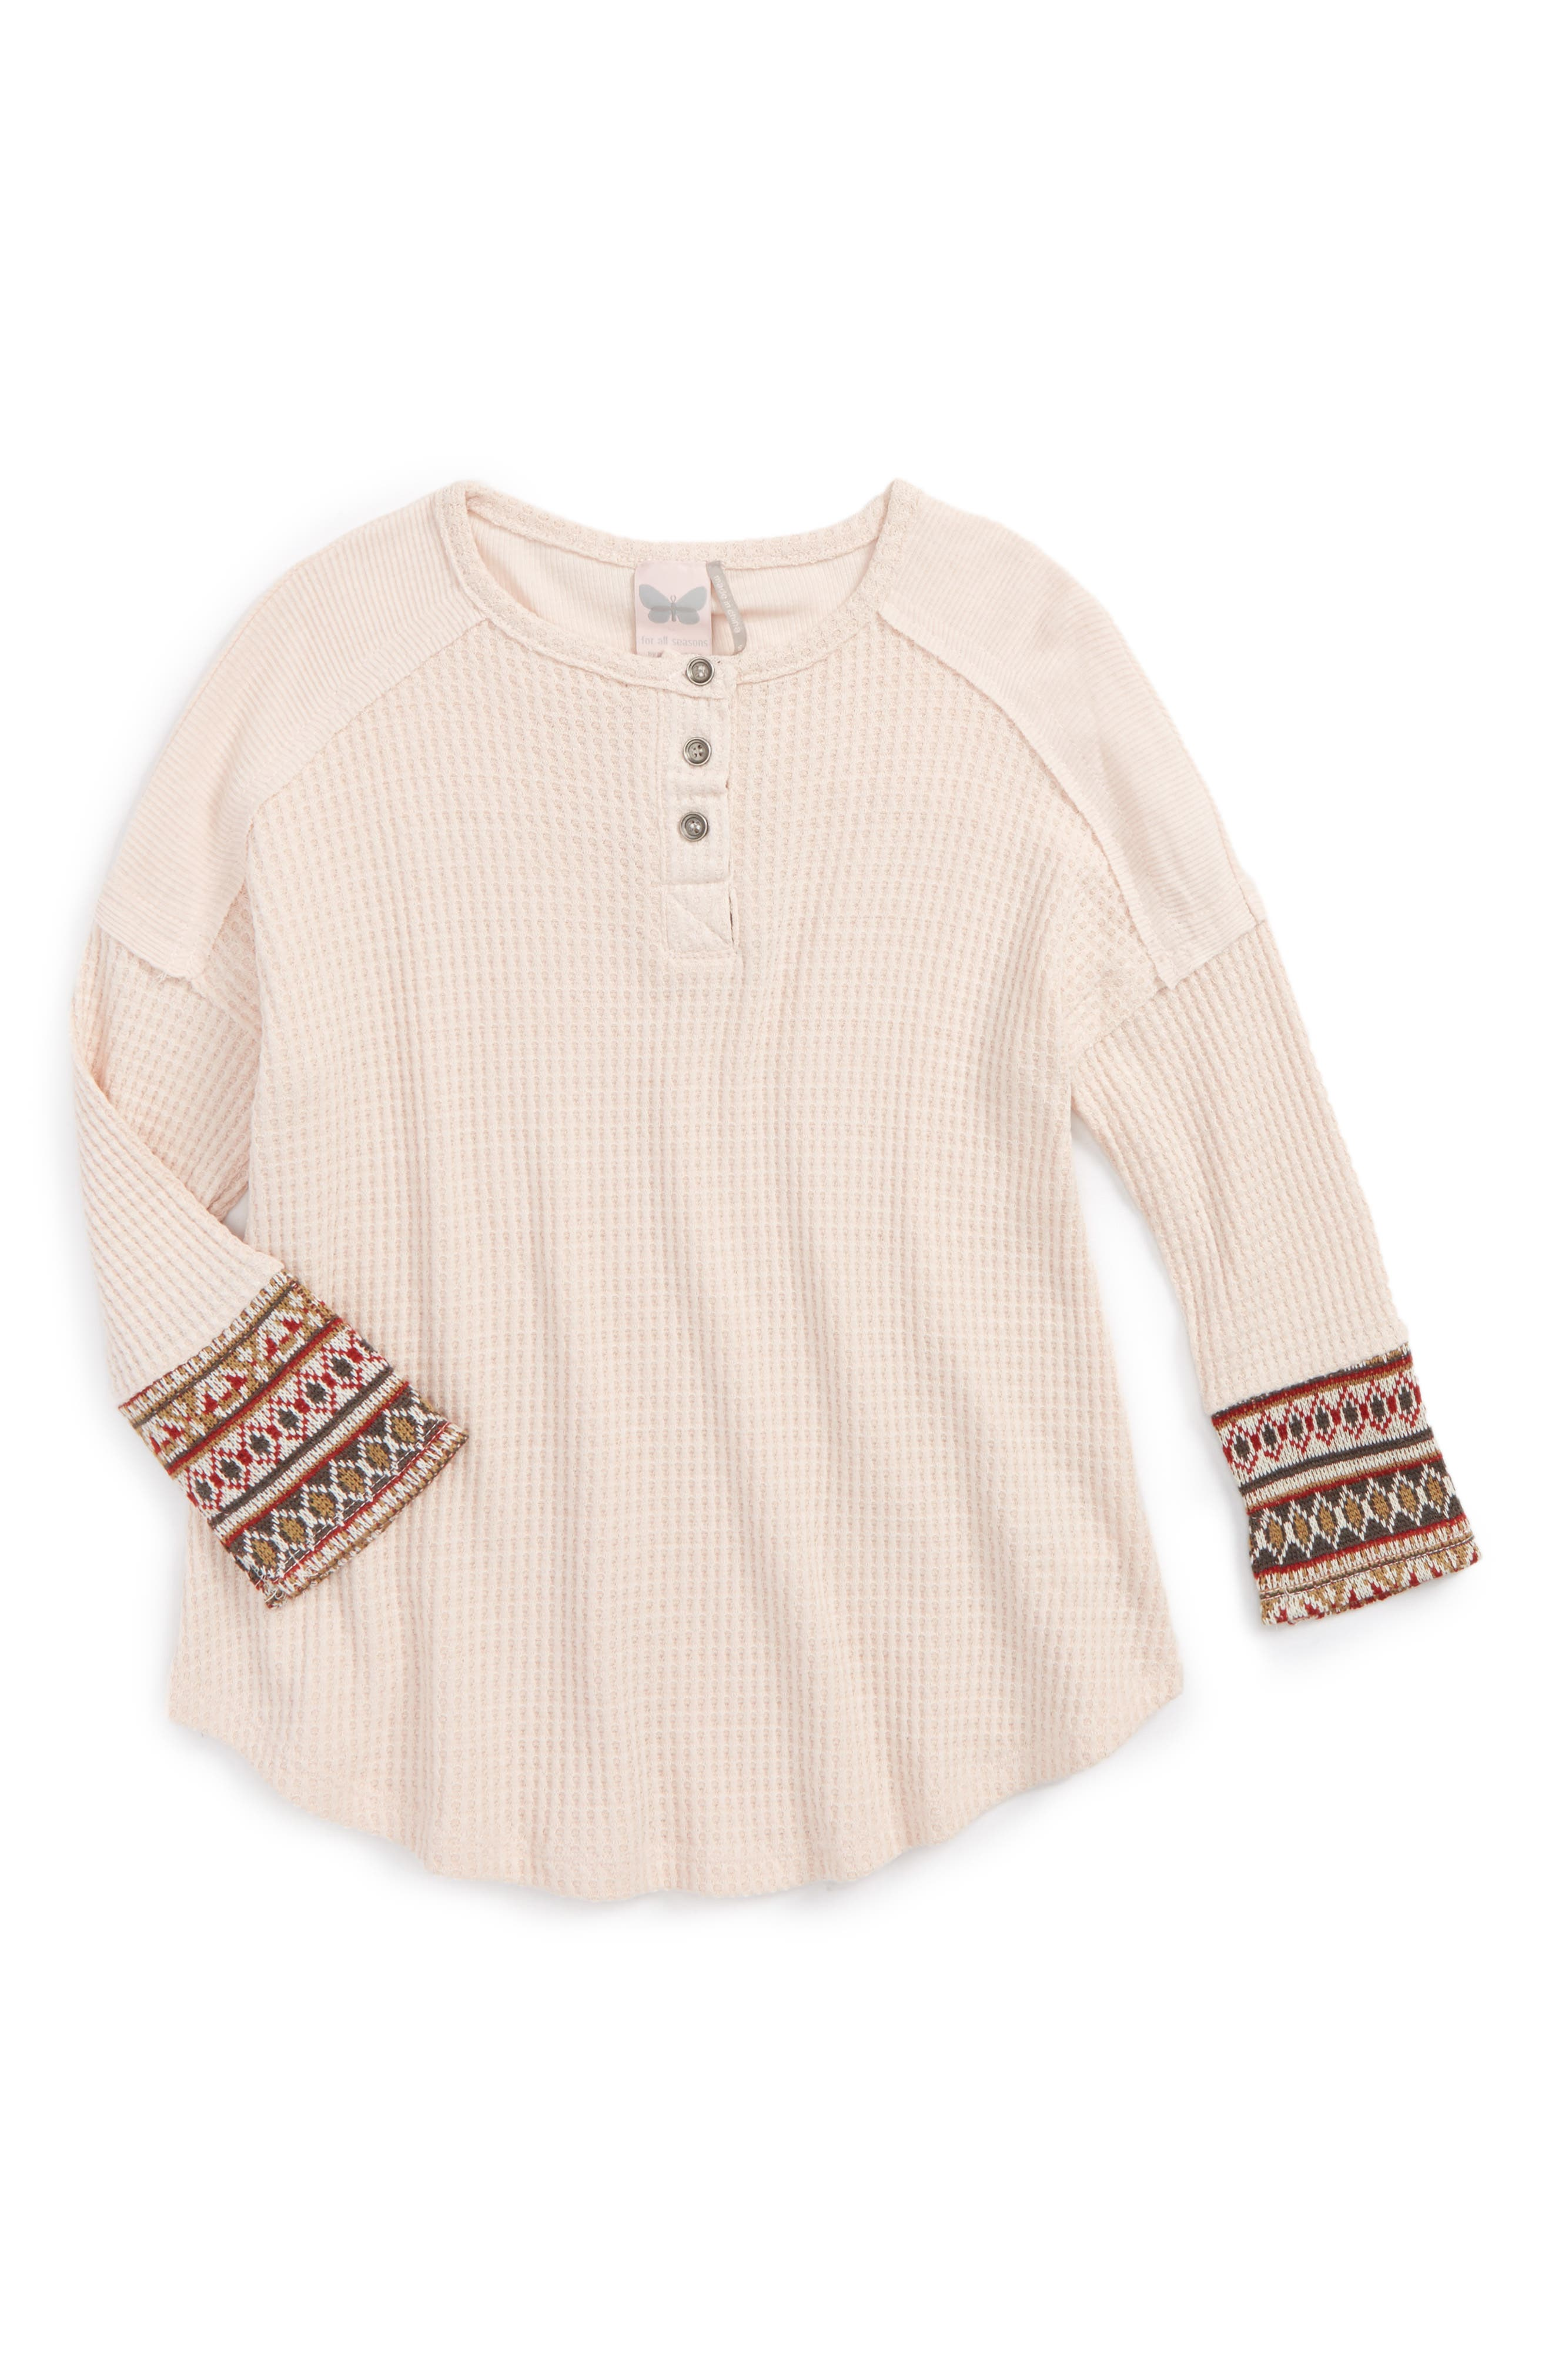 Fairisle Thermal Shirt,                             Main thumbnail 1, color,                             Cream